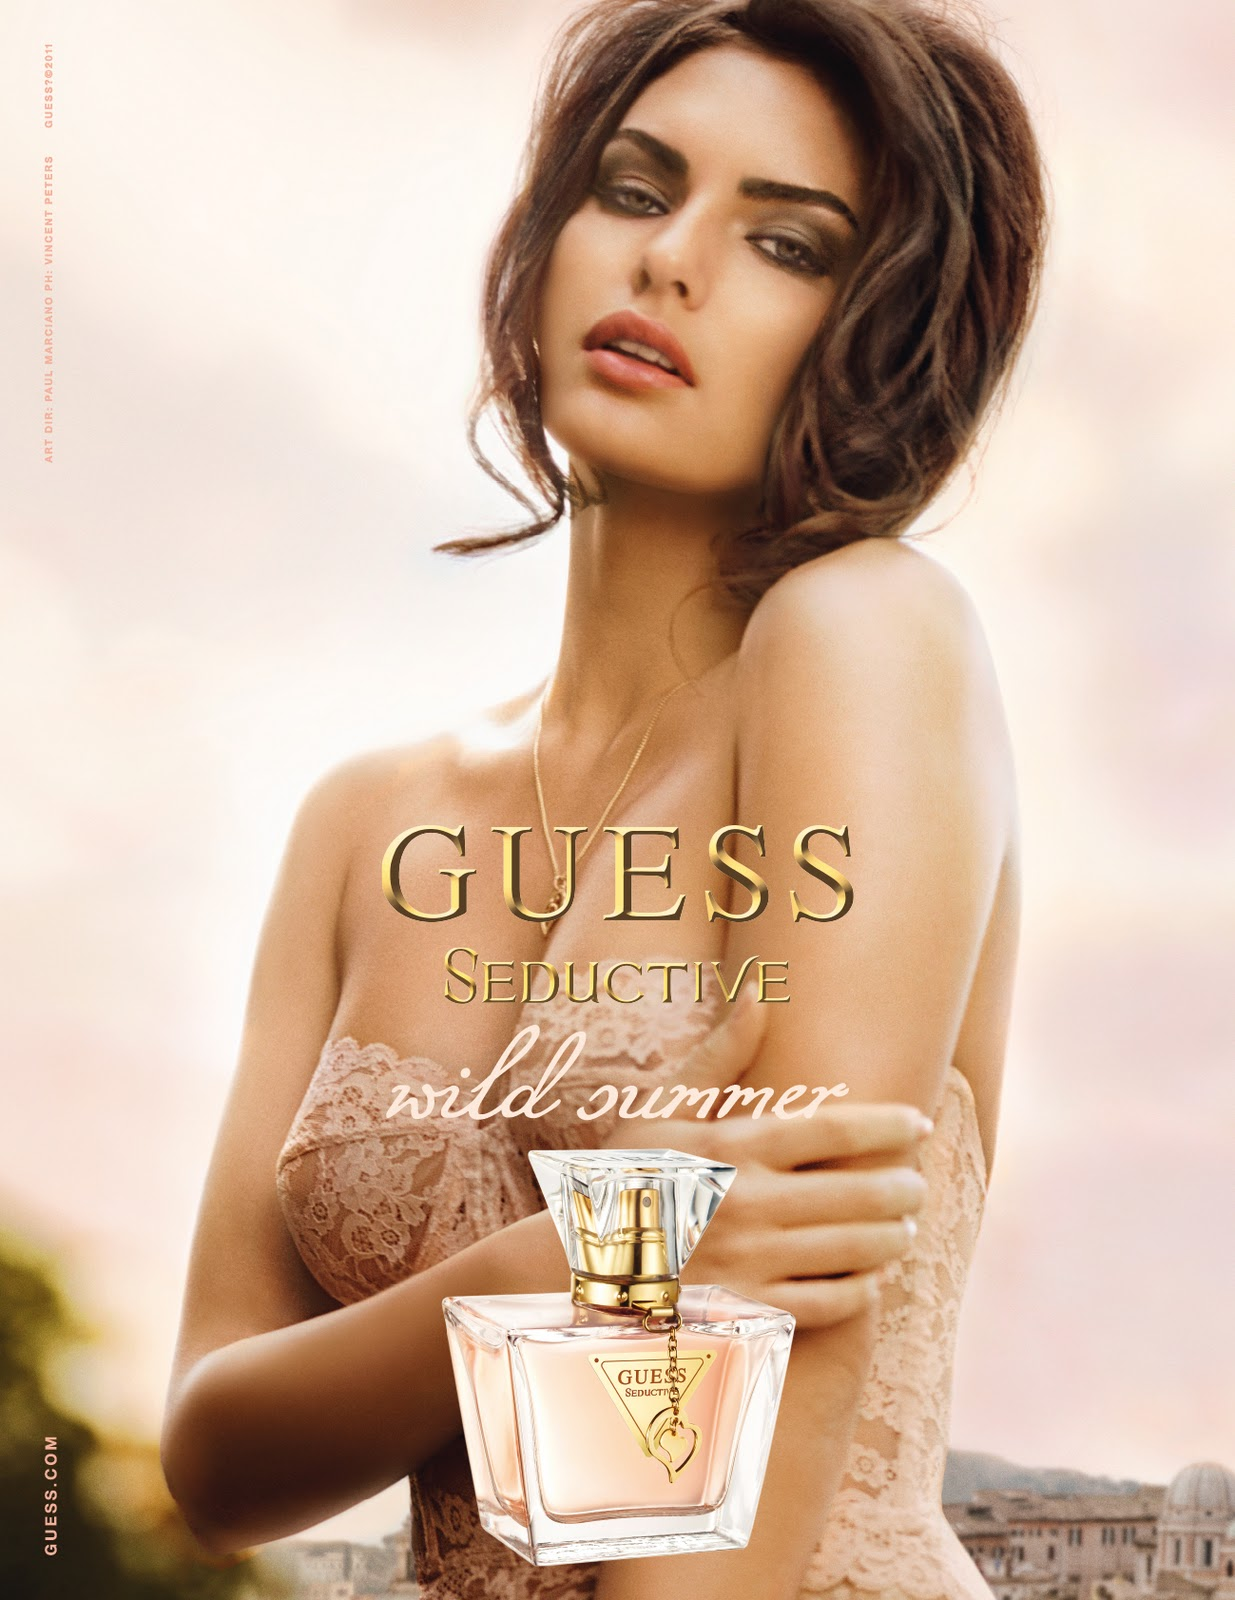 fall licensed for non commercial use only ahmed the first advertisement is for guess seductive